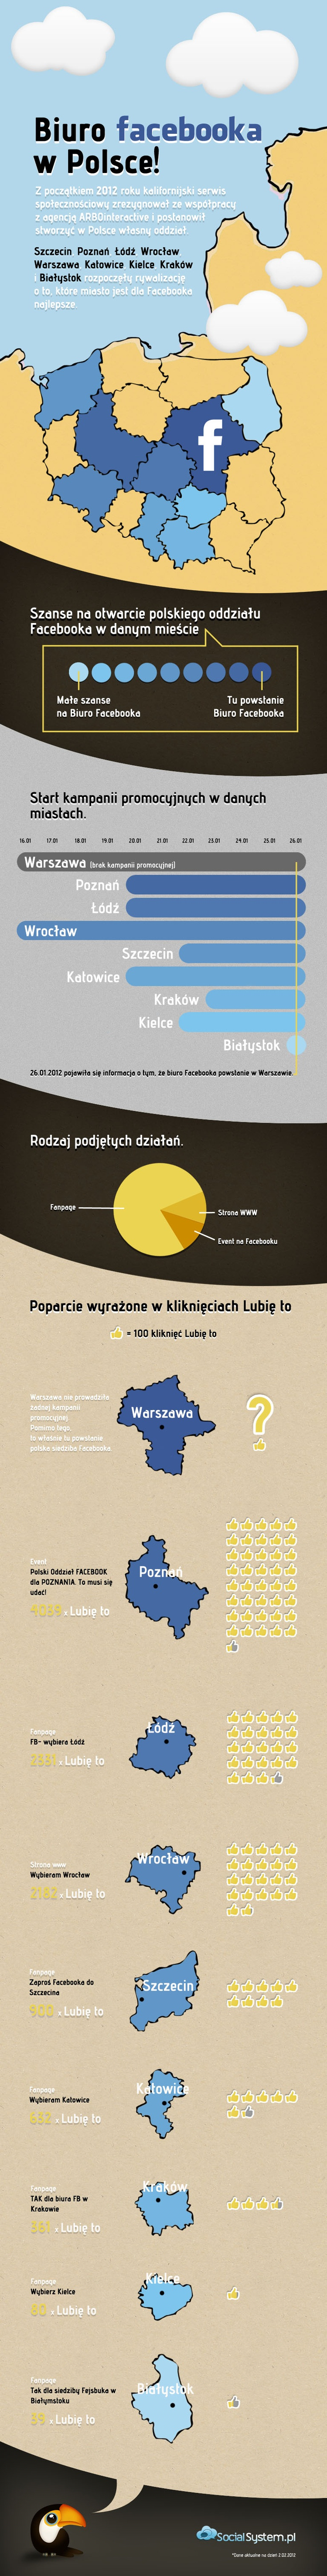 Our infographic design